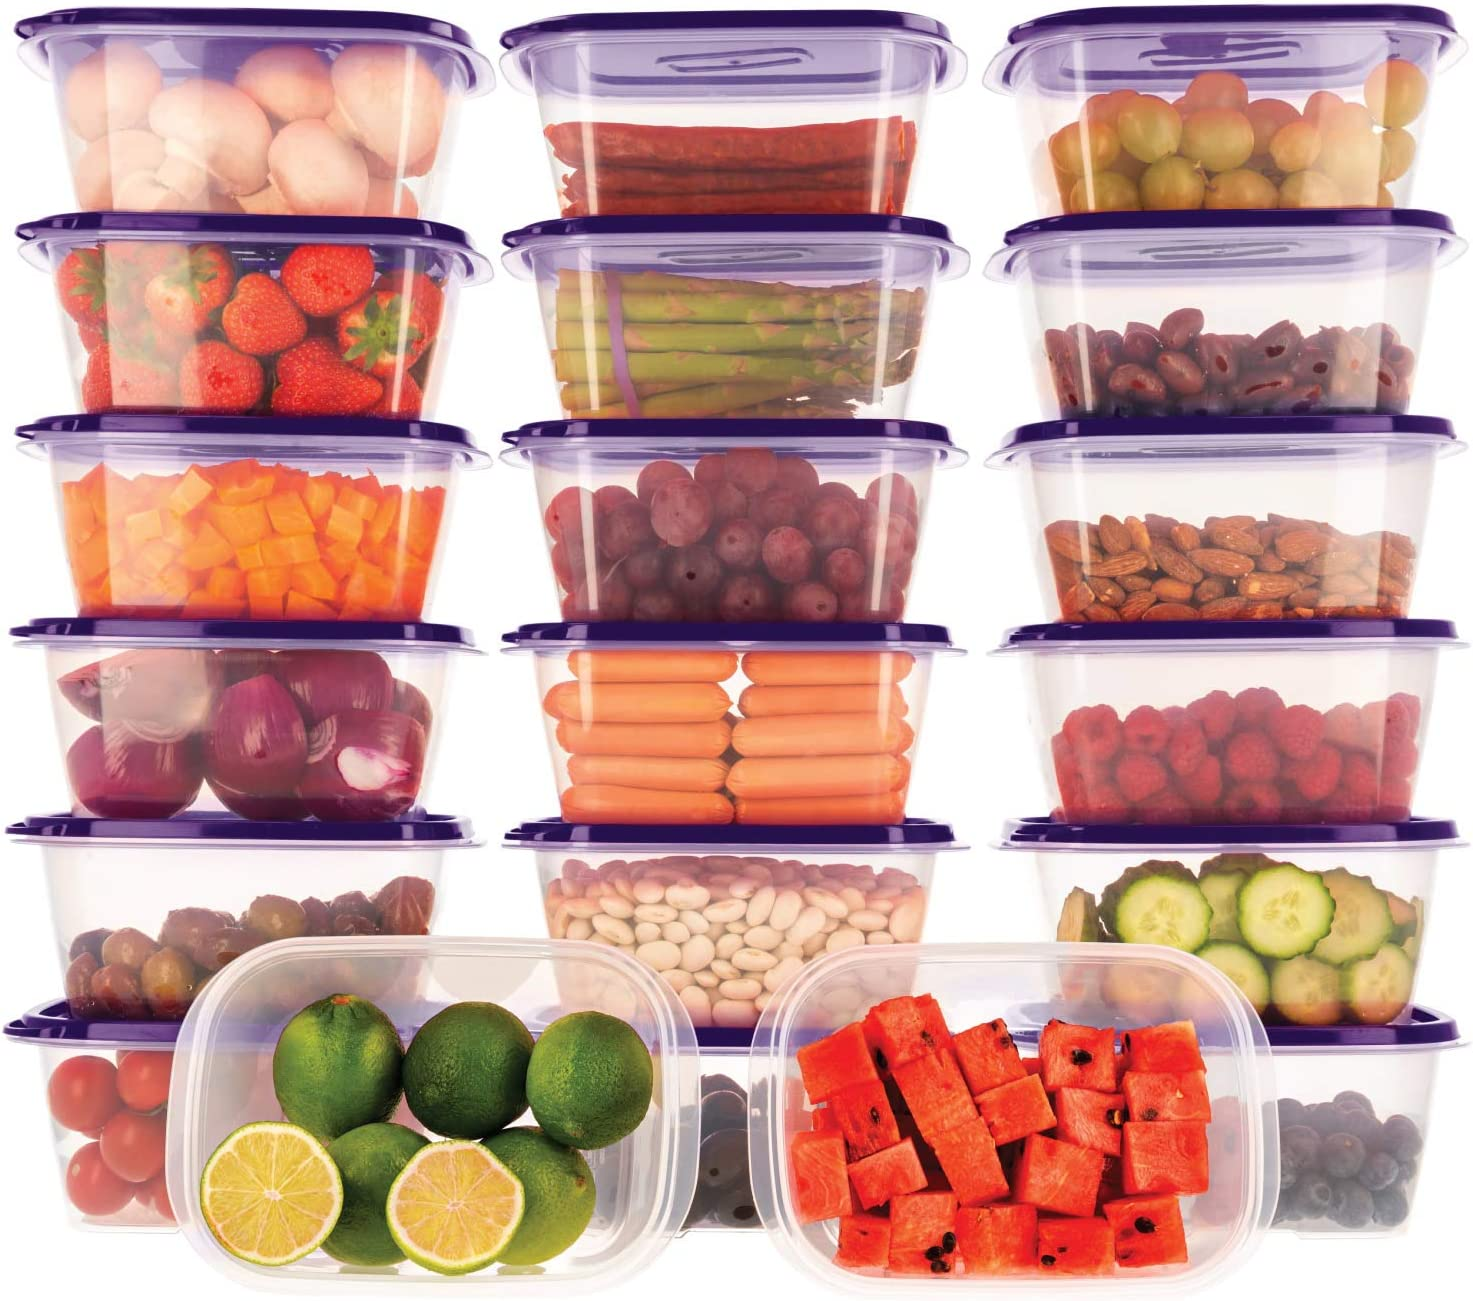 Oursson Food Storage Containers with Lids Airtight, BPA Free, Lunchbox – Reusable and Practical – Transparent Snack Containers with Colored Lids (20 x 34 oz, Purple)